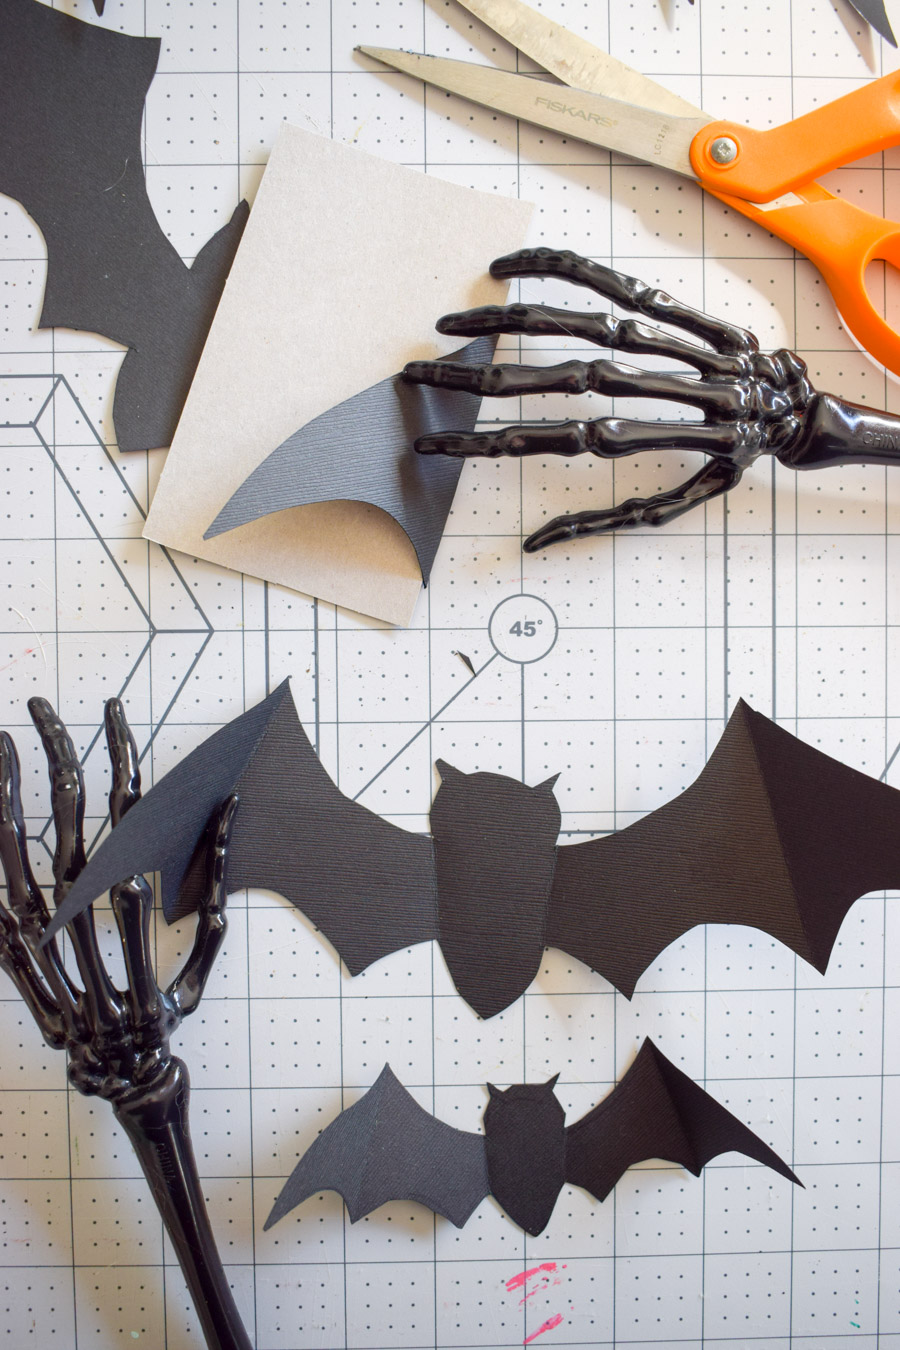 Make your own easy DIY Paper Bats using cardstock and some sharp scissors! It's that easy, and you can customize them too